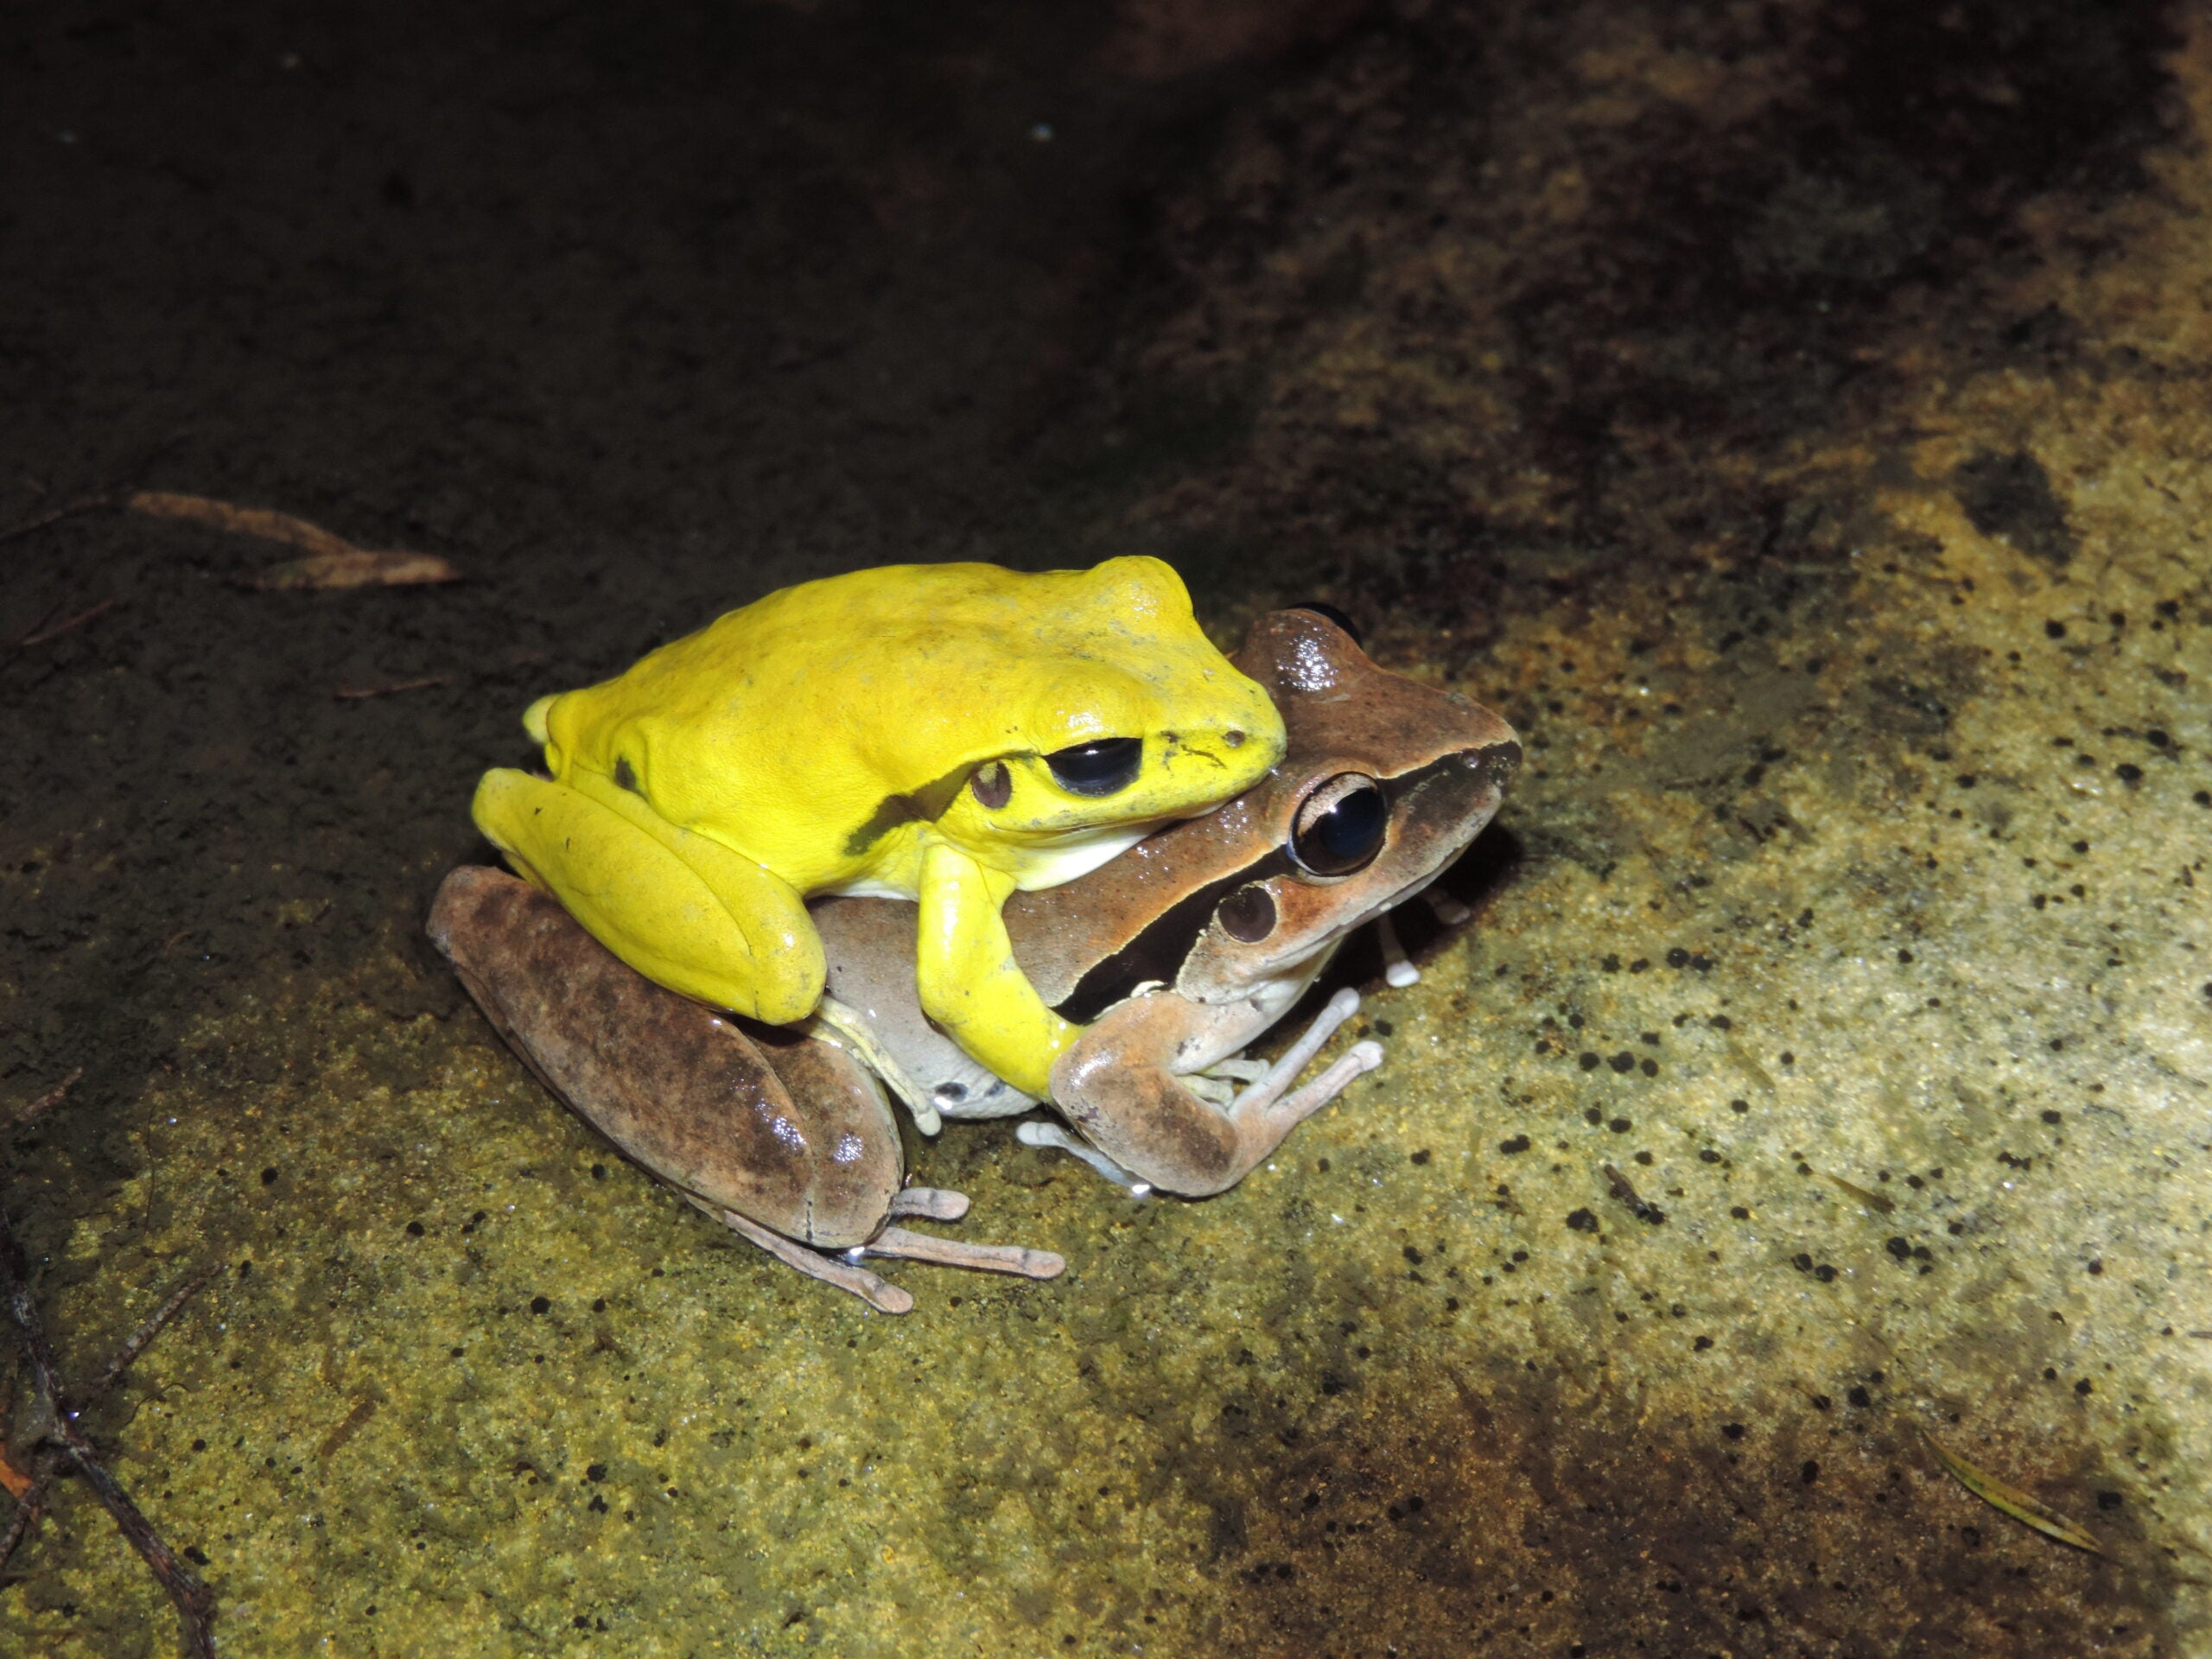 A frog couple has sex. The male is yellow.